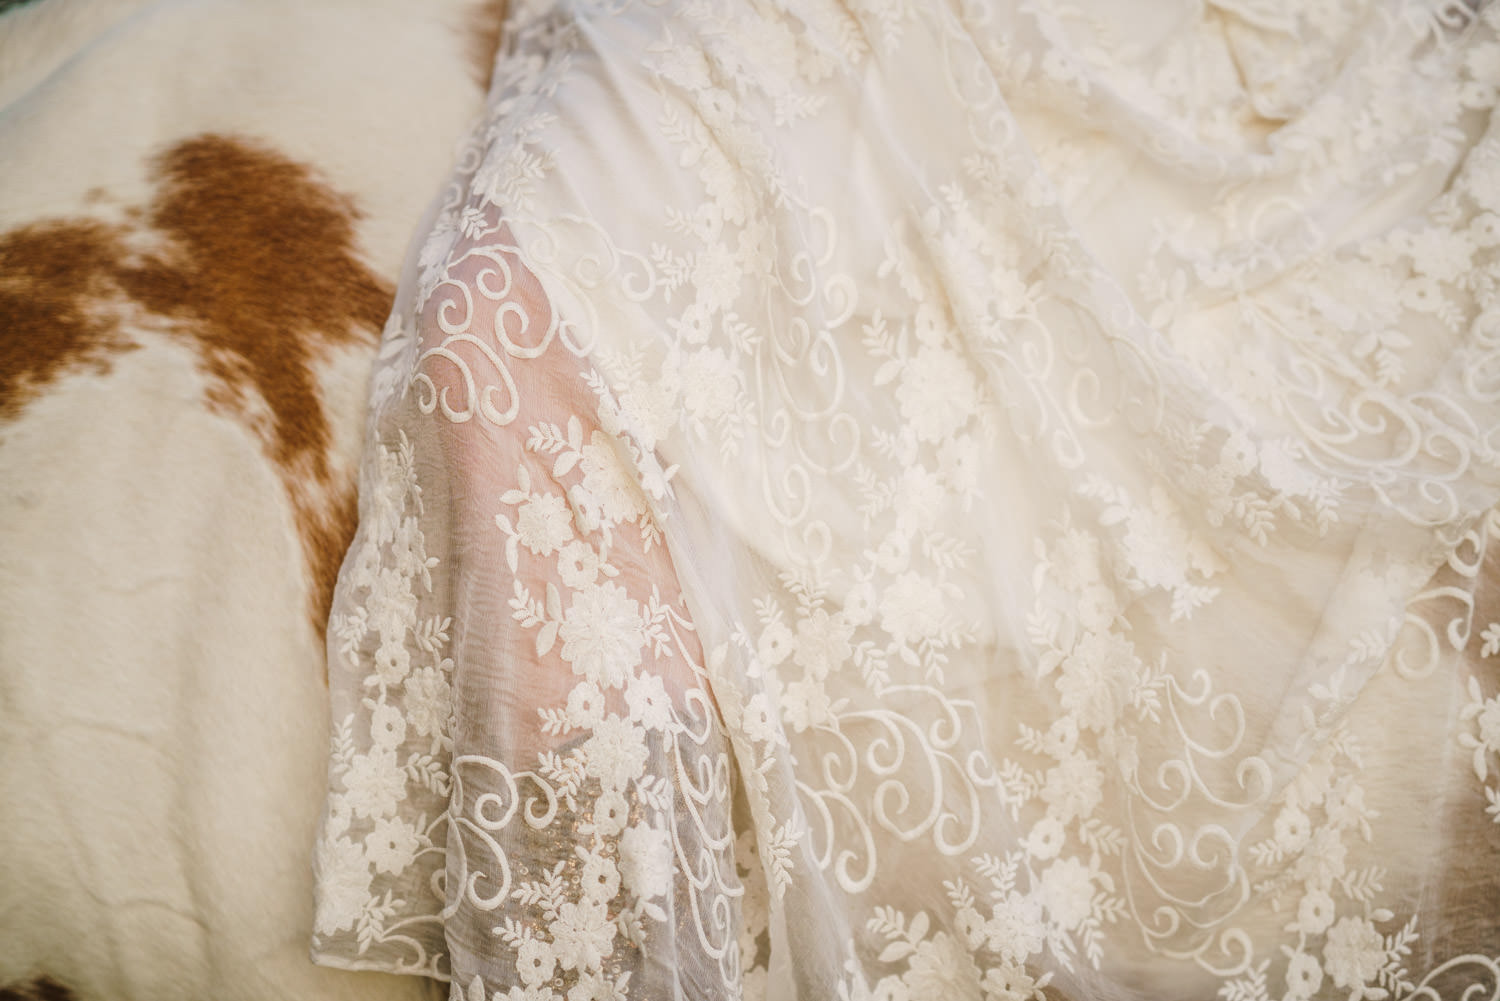 Equestrian bridal session closeup of lace gown and horse spots photo